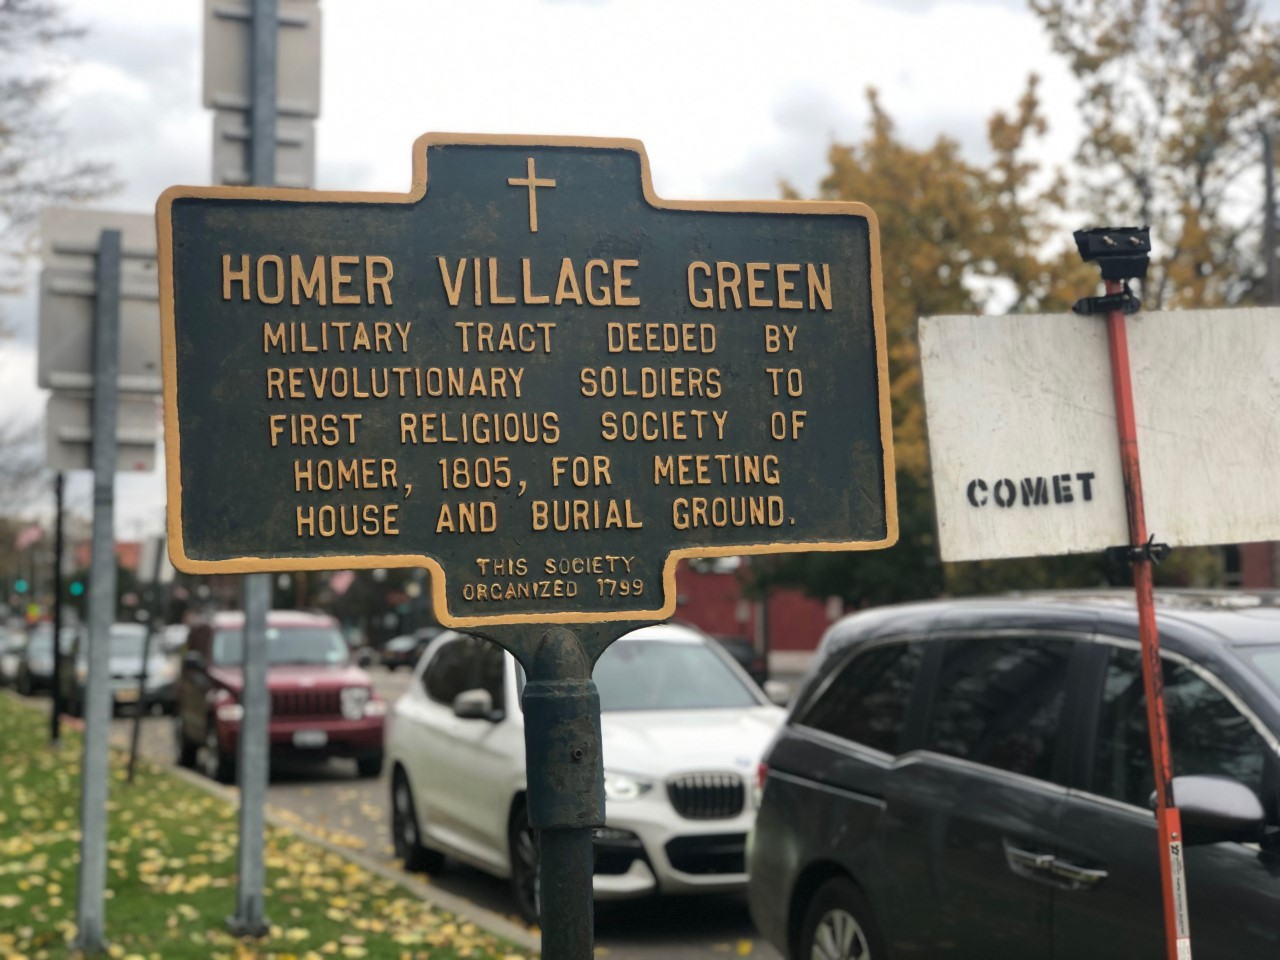 Homer Village Green Landmark